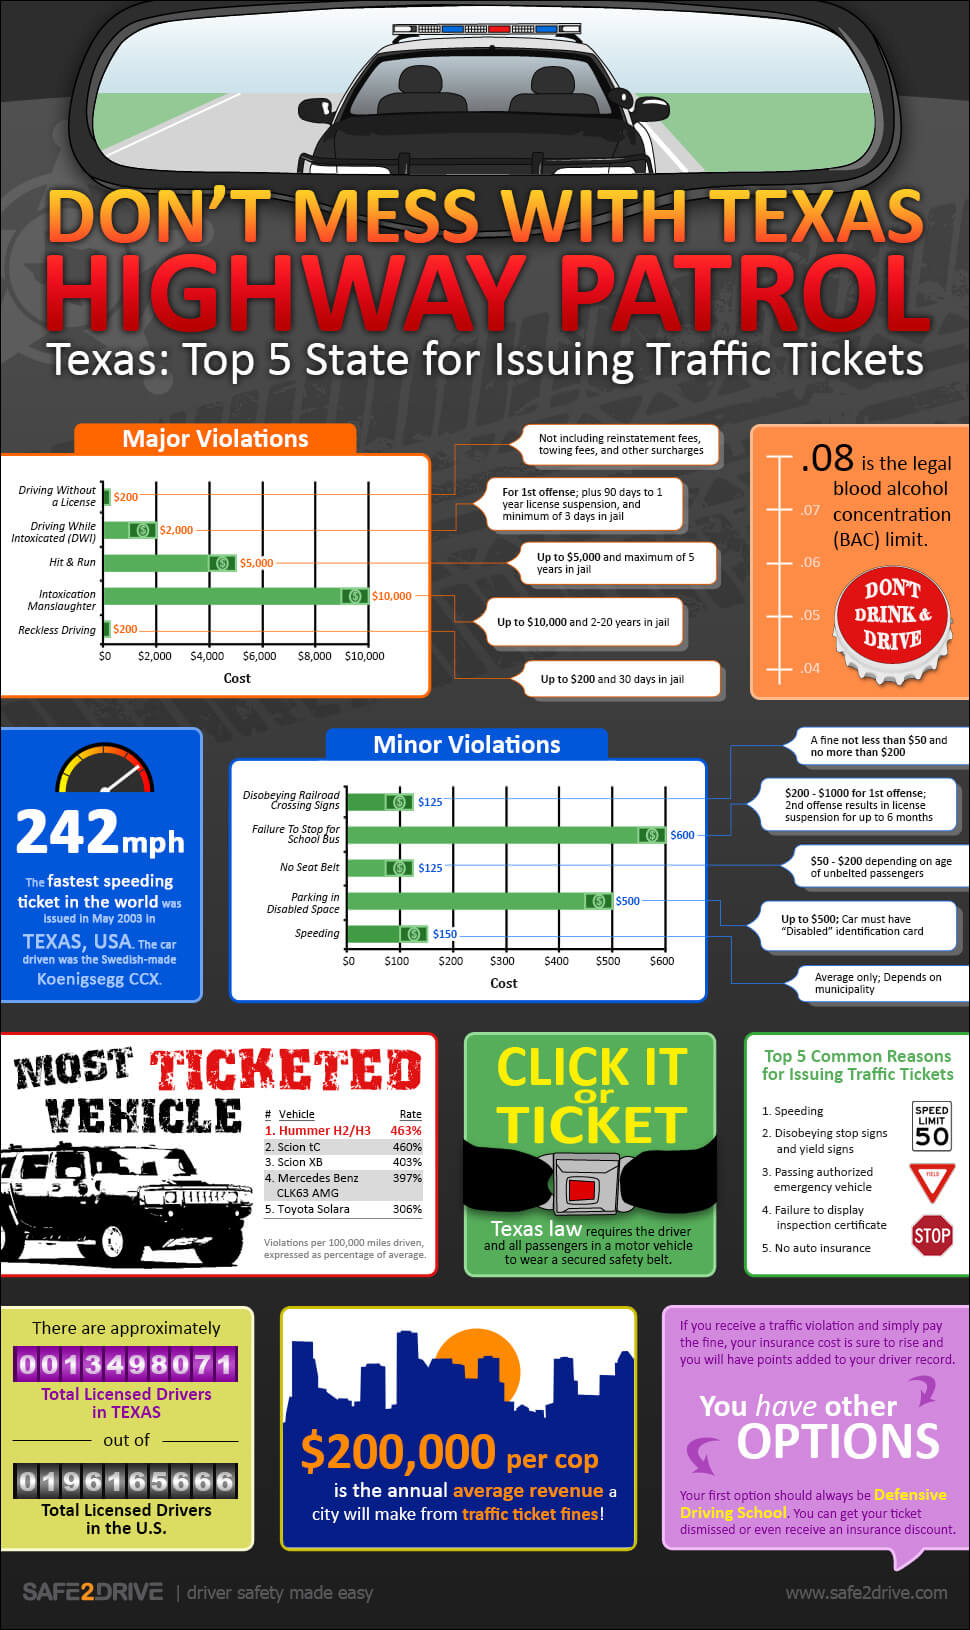 Texas Traffic Ticket Laws and Fines